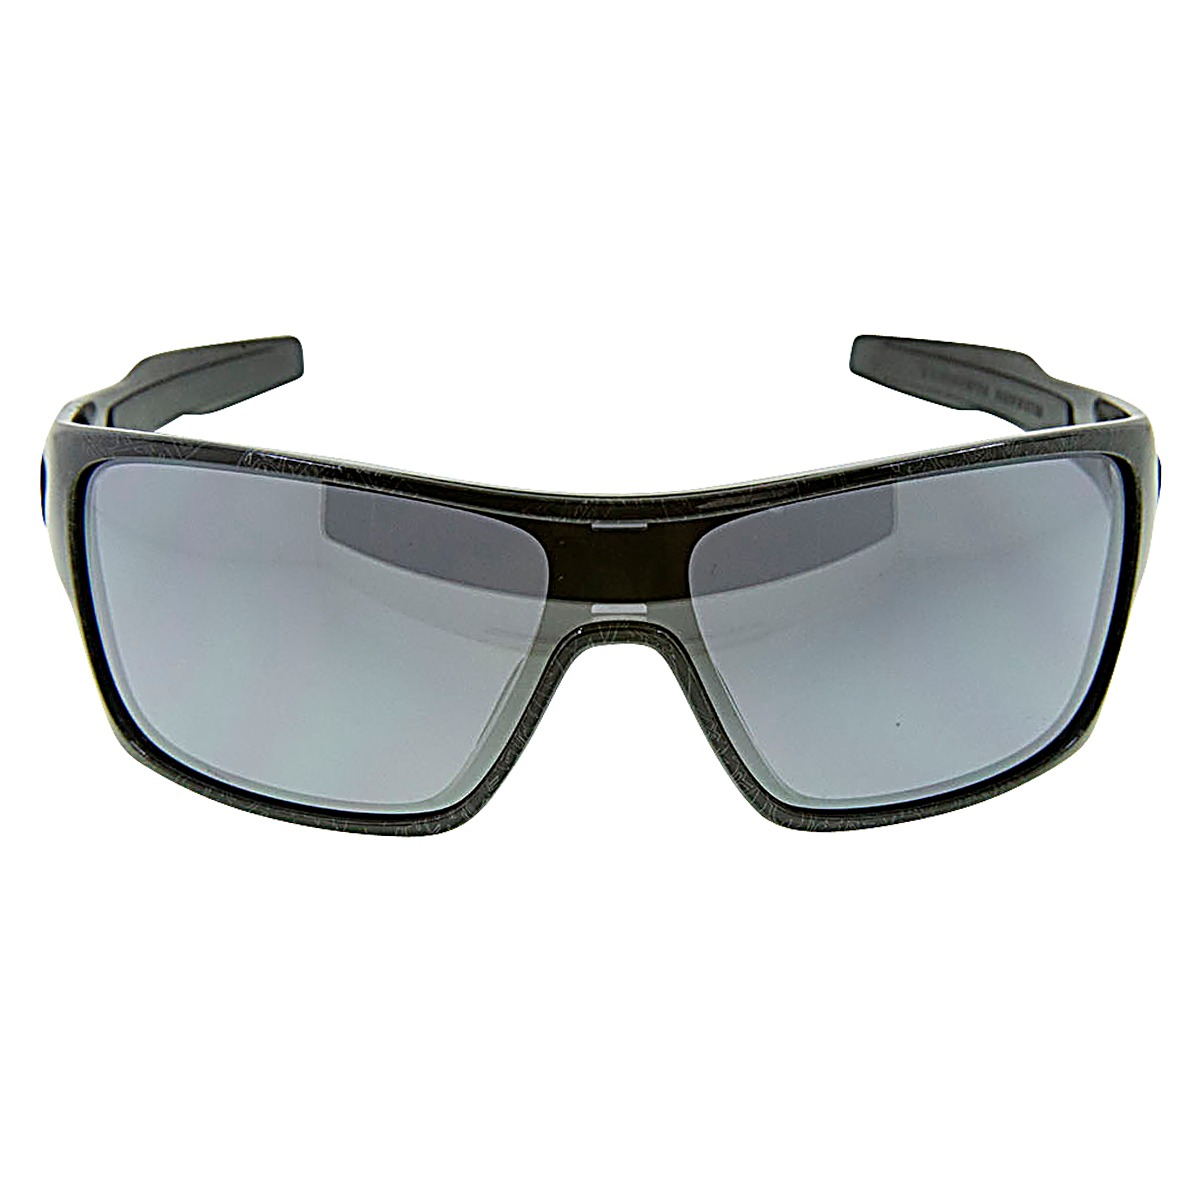 44f3d595a47 Details about New Authentic Oakley Turbine Rotor Sunglasses Black Silver Ghost  Text 930702